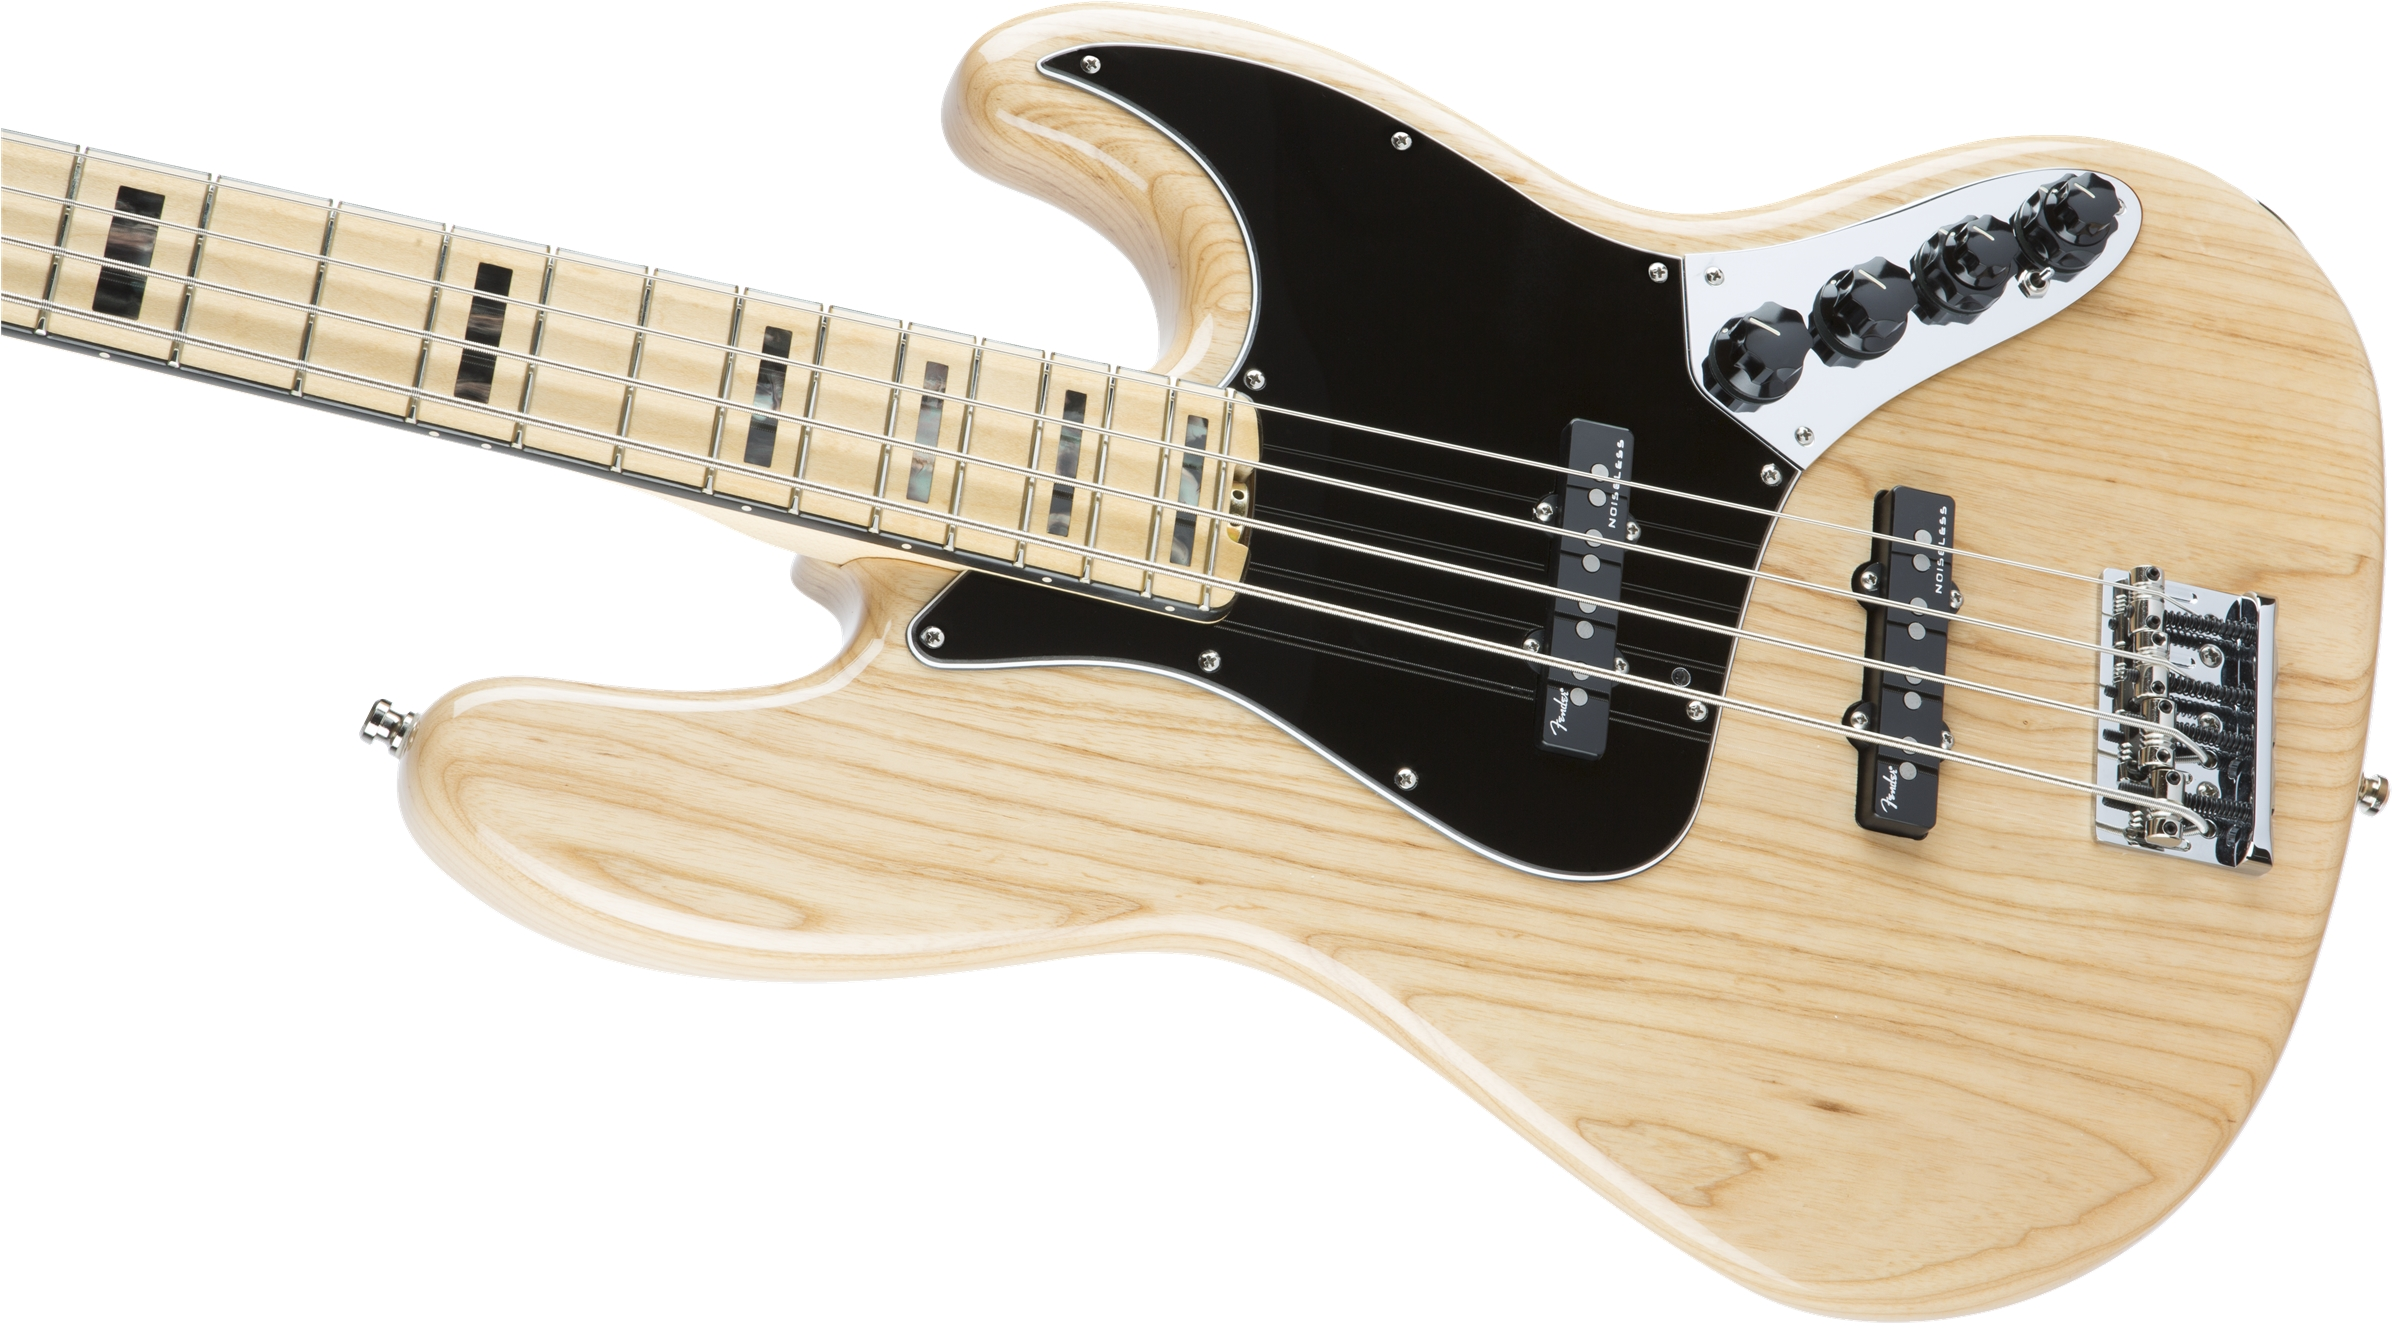 Fender American Deluxe Jazz Bass Wiring Diagram Solutions Strat Diagrams Control Schematic All Kind Of